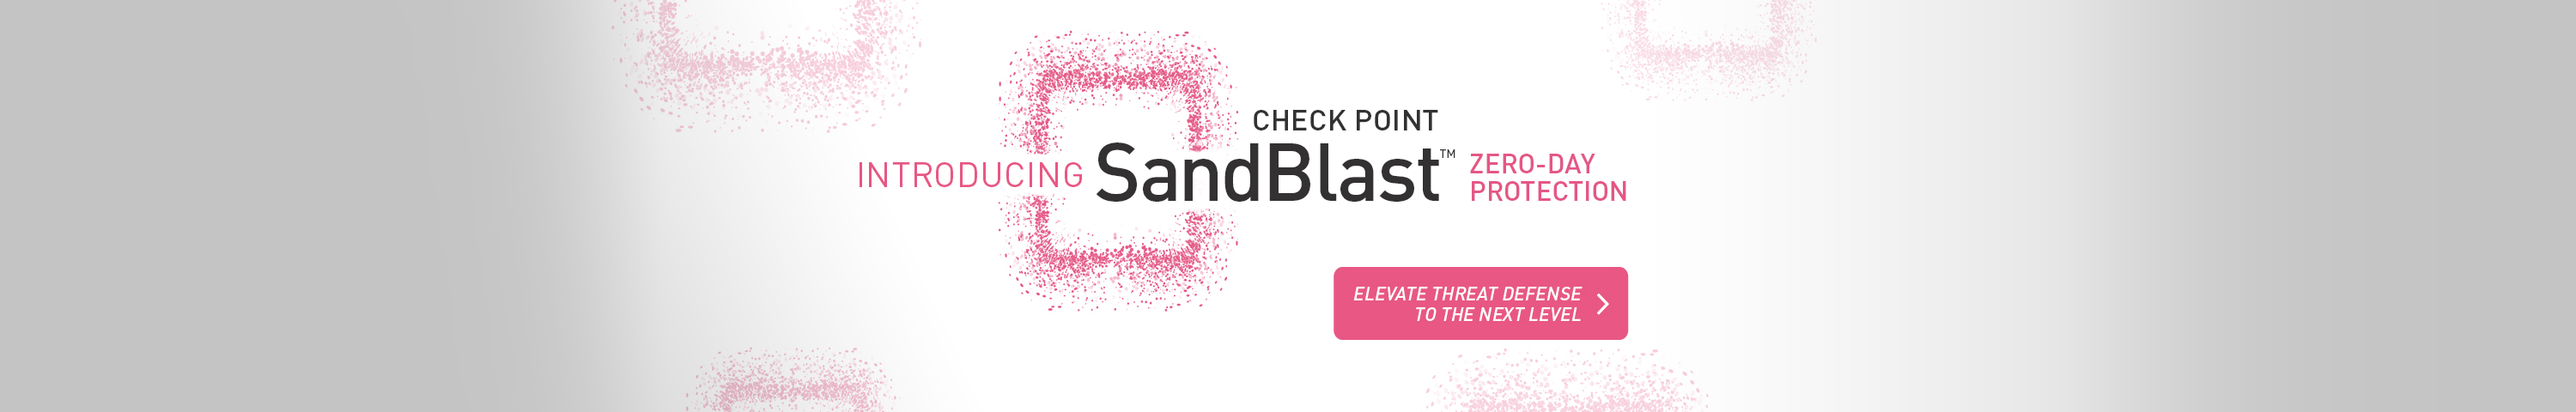 Introducing Check Point SandBlast Zero-Day Protection